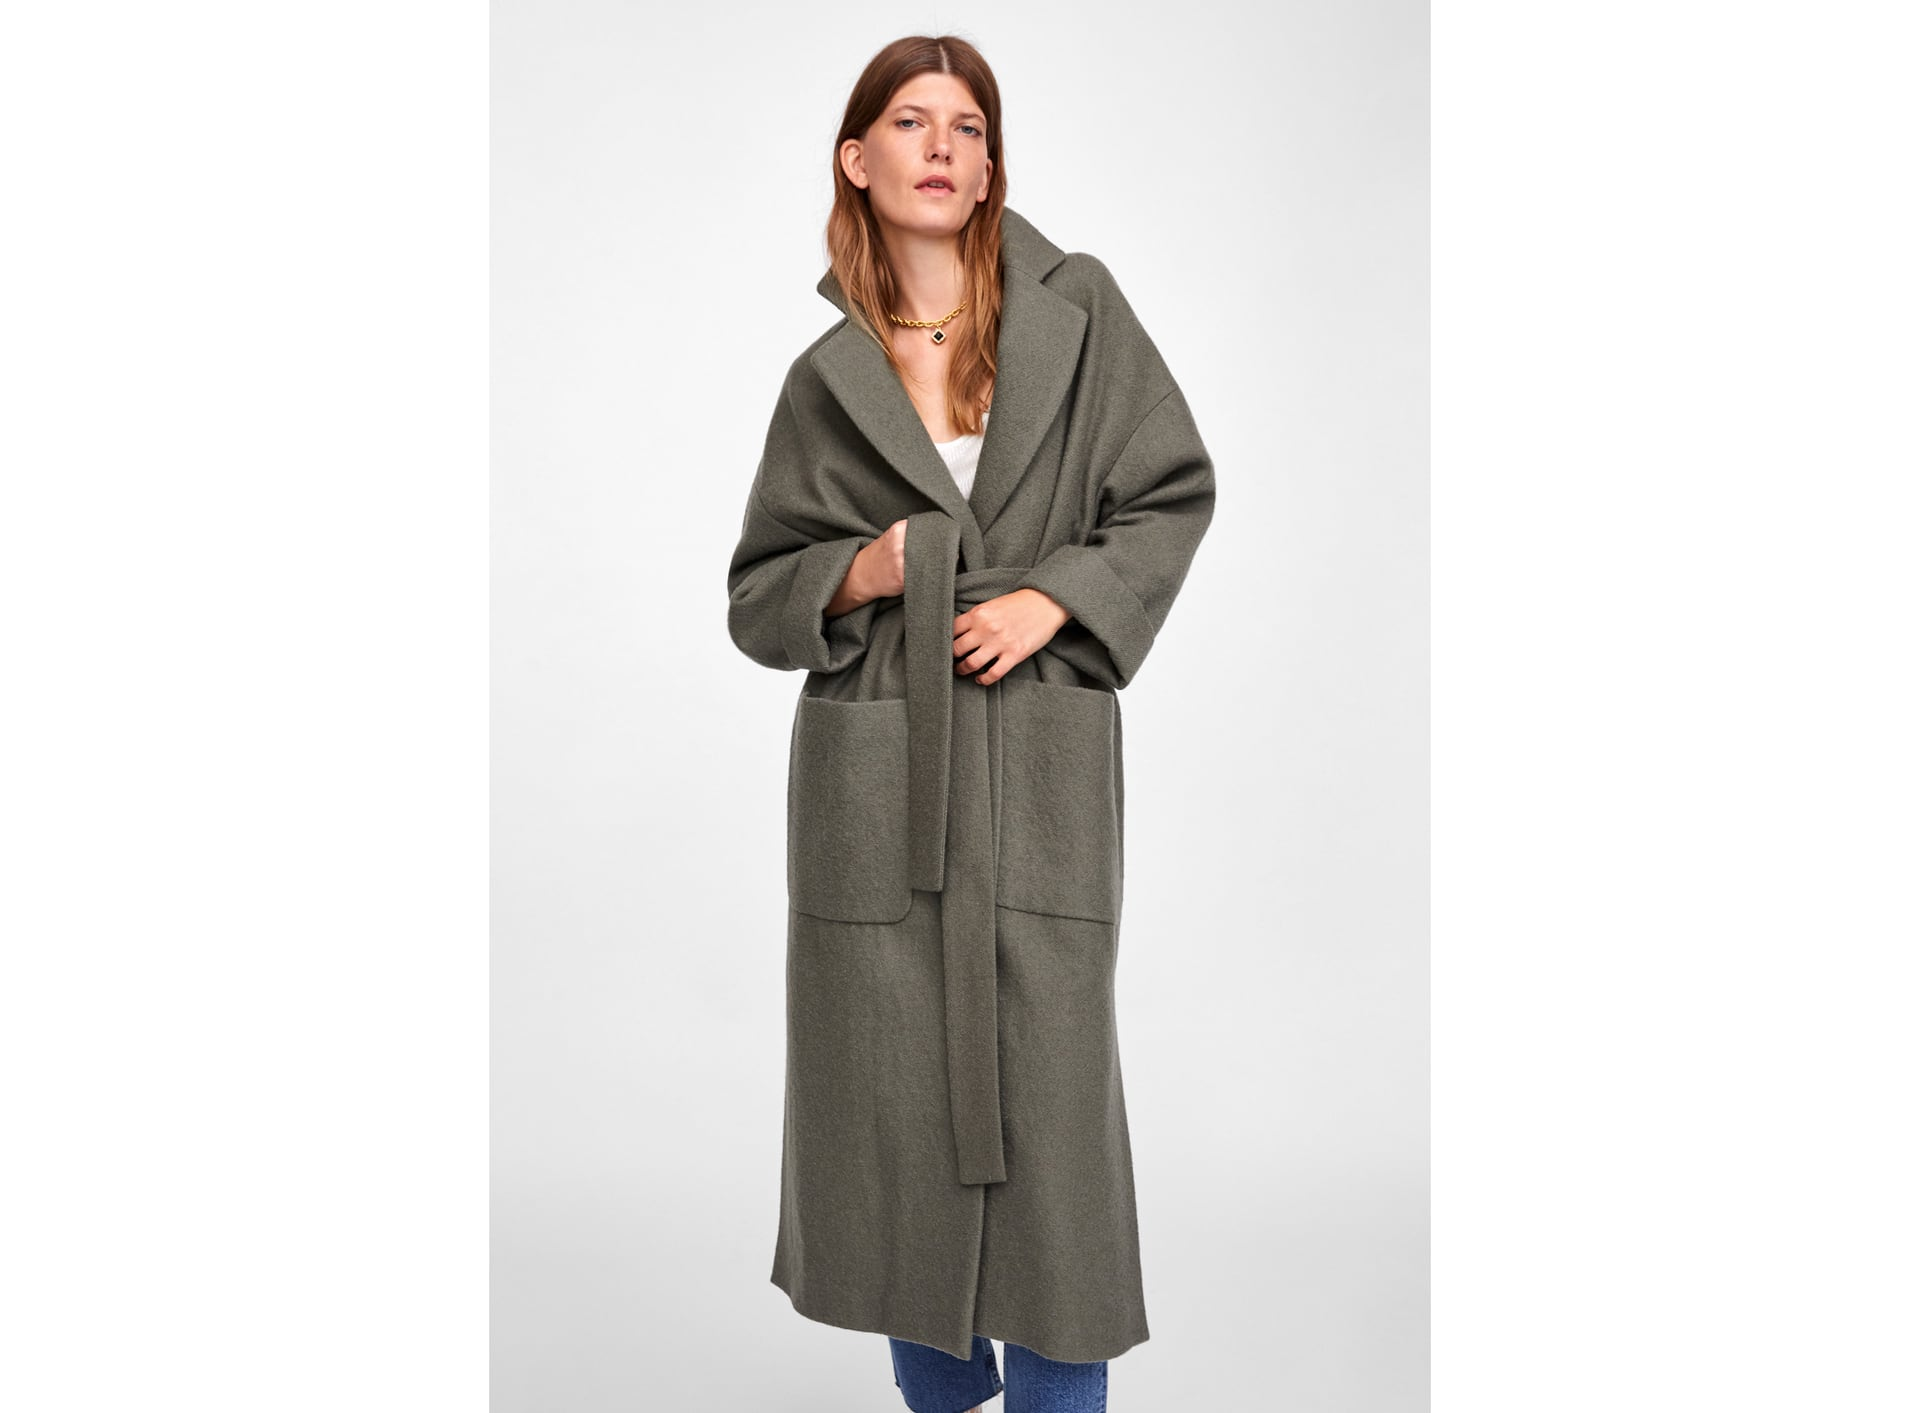 This coat is by Zara and you can buy it    here   .